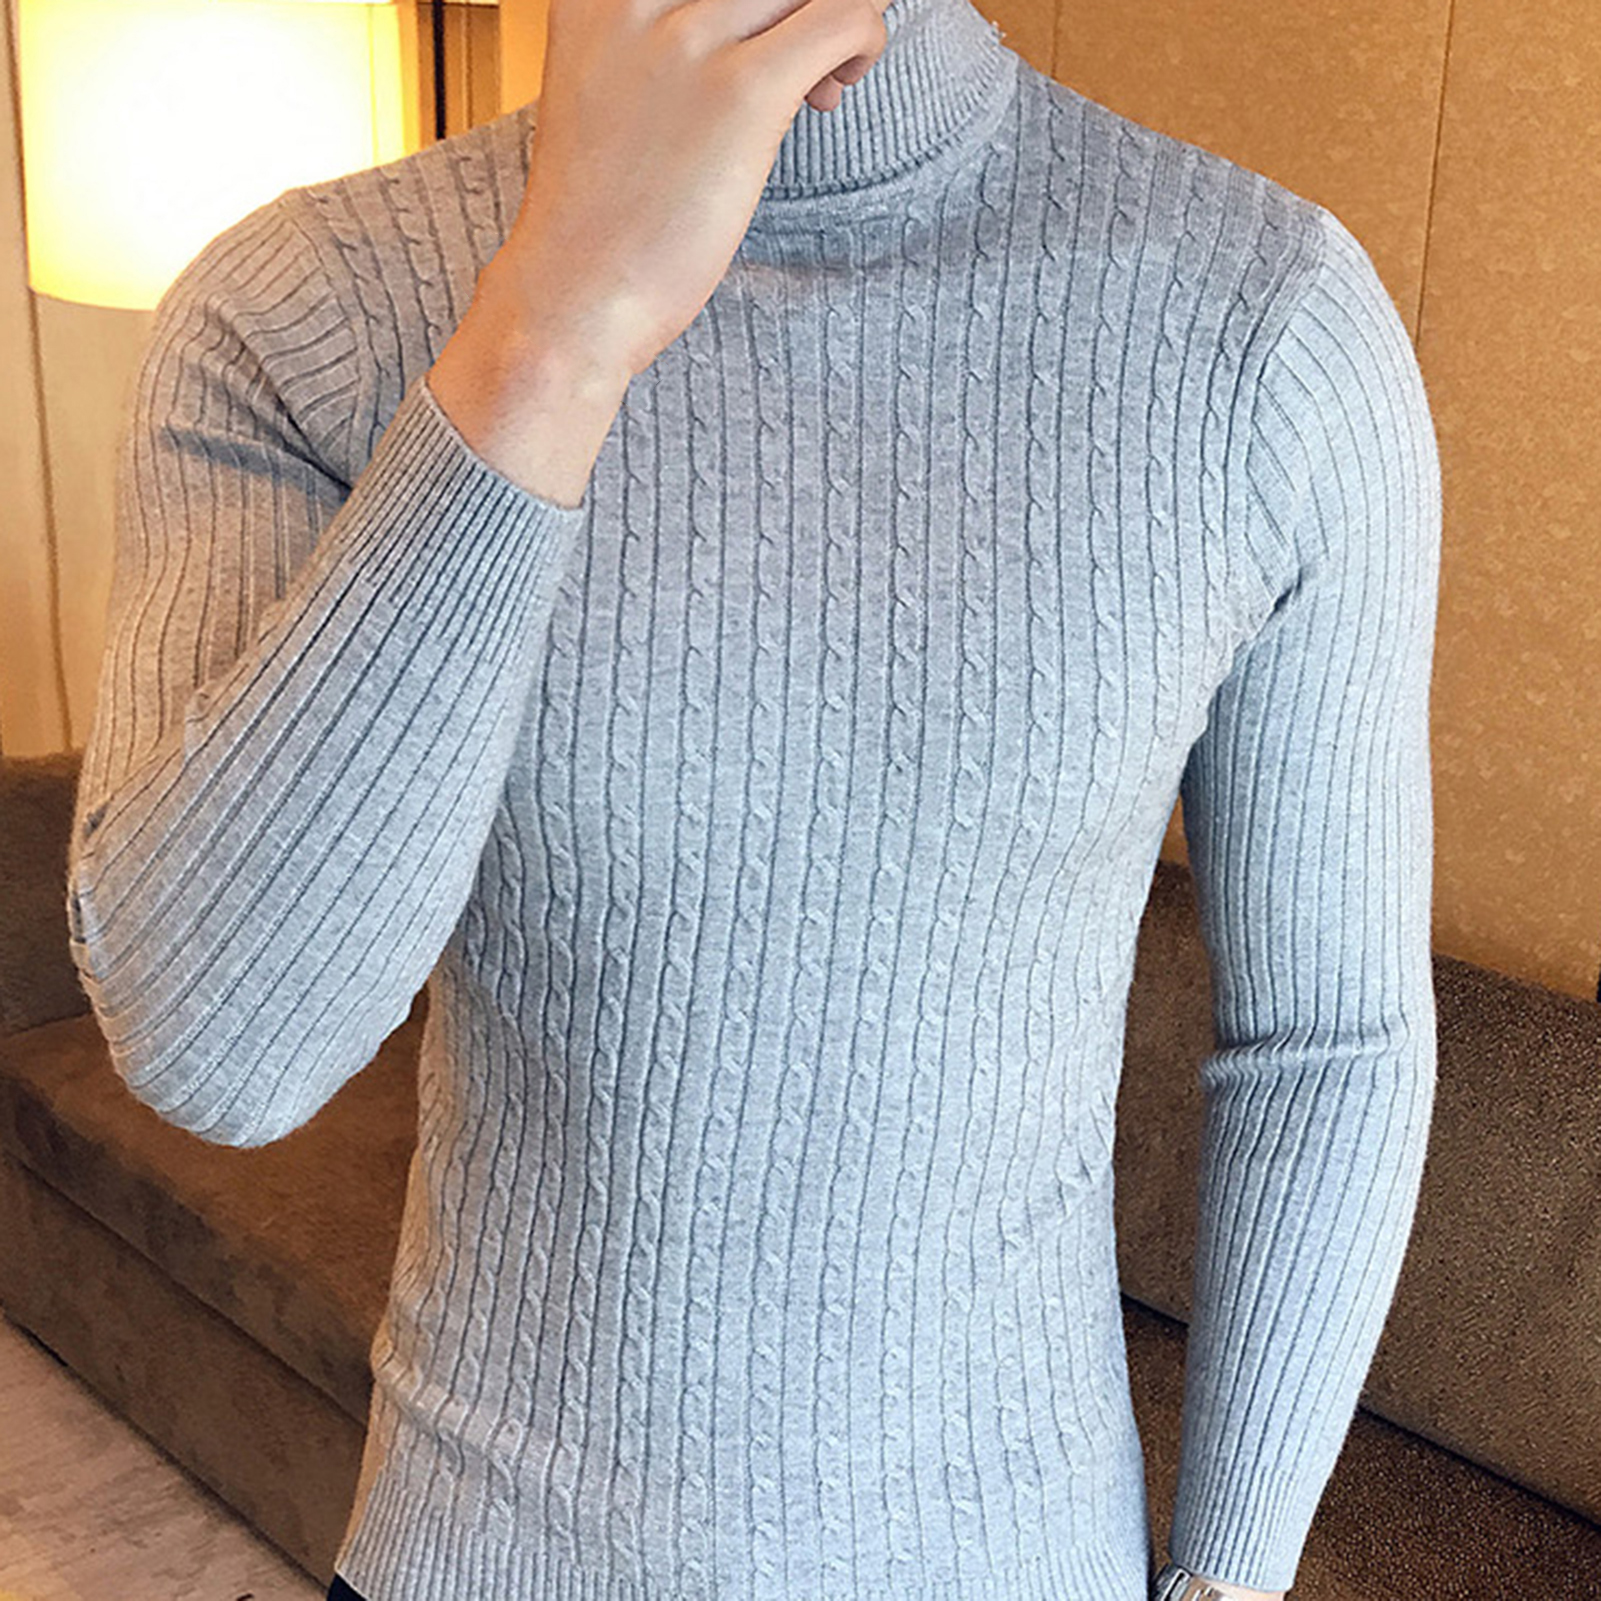 2020 New Autumn Winter Men'S sweater Men's Turtleneck Solid Color Casual Sweater Men's Slim-Fit Knitted Pullovers 5